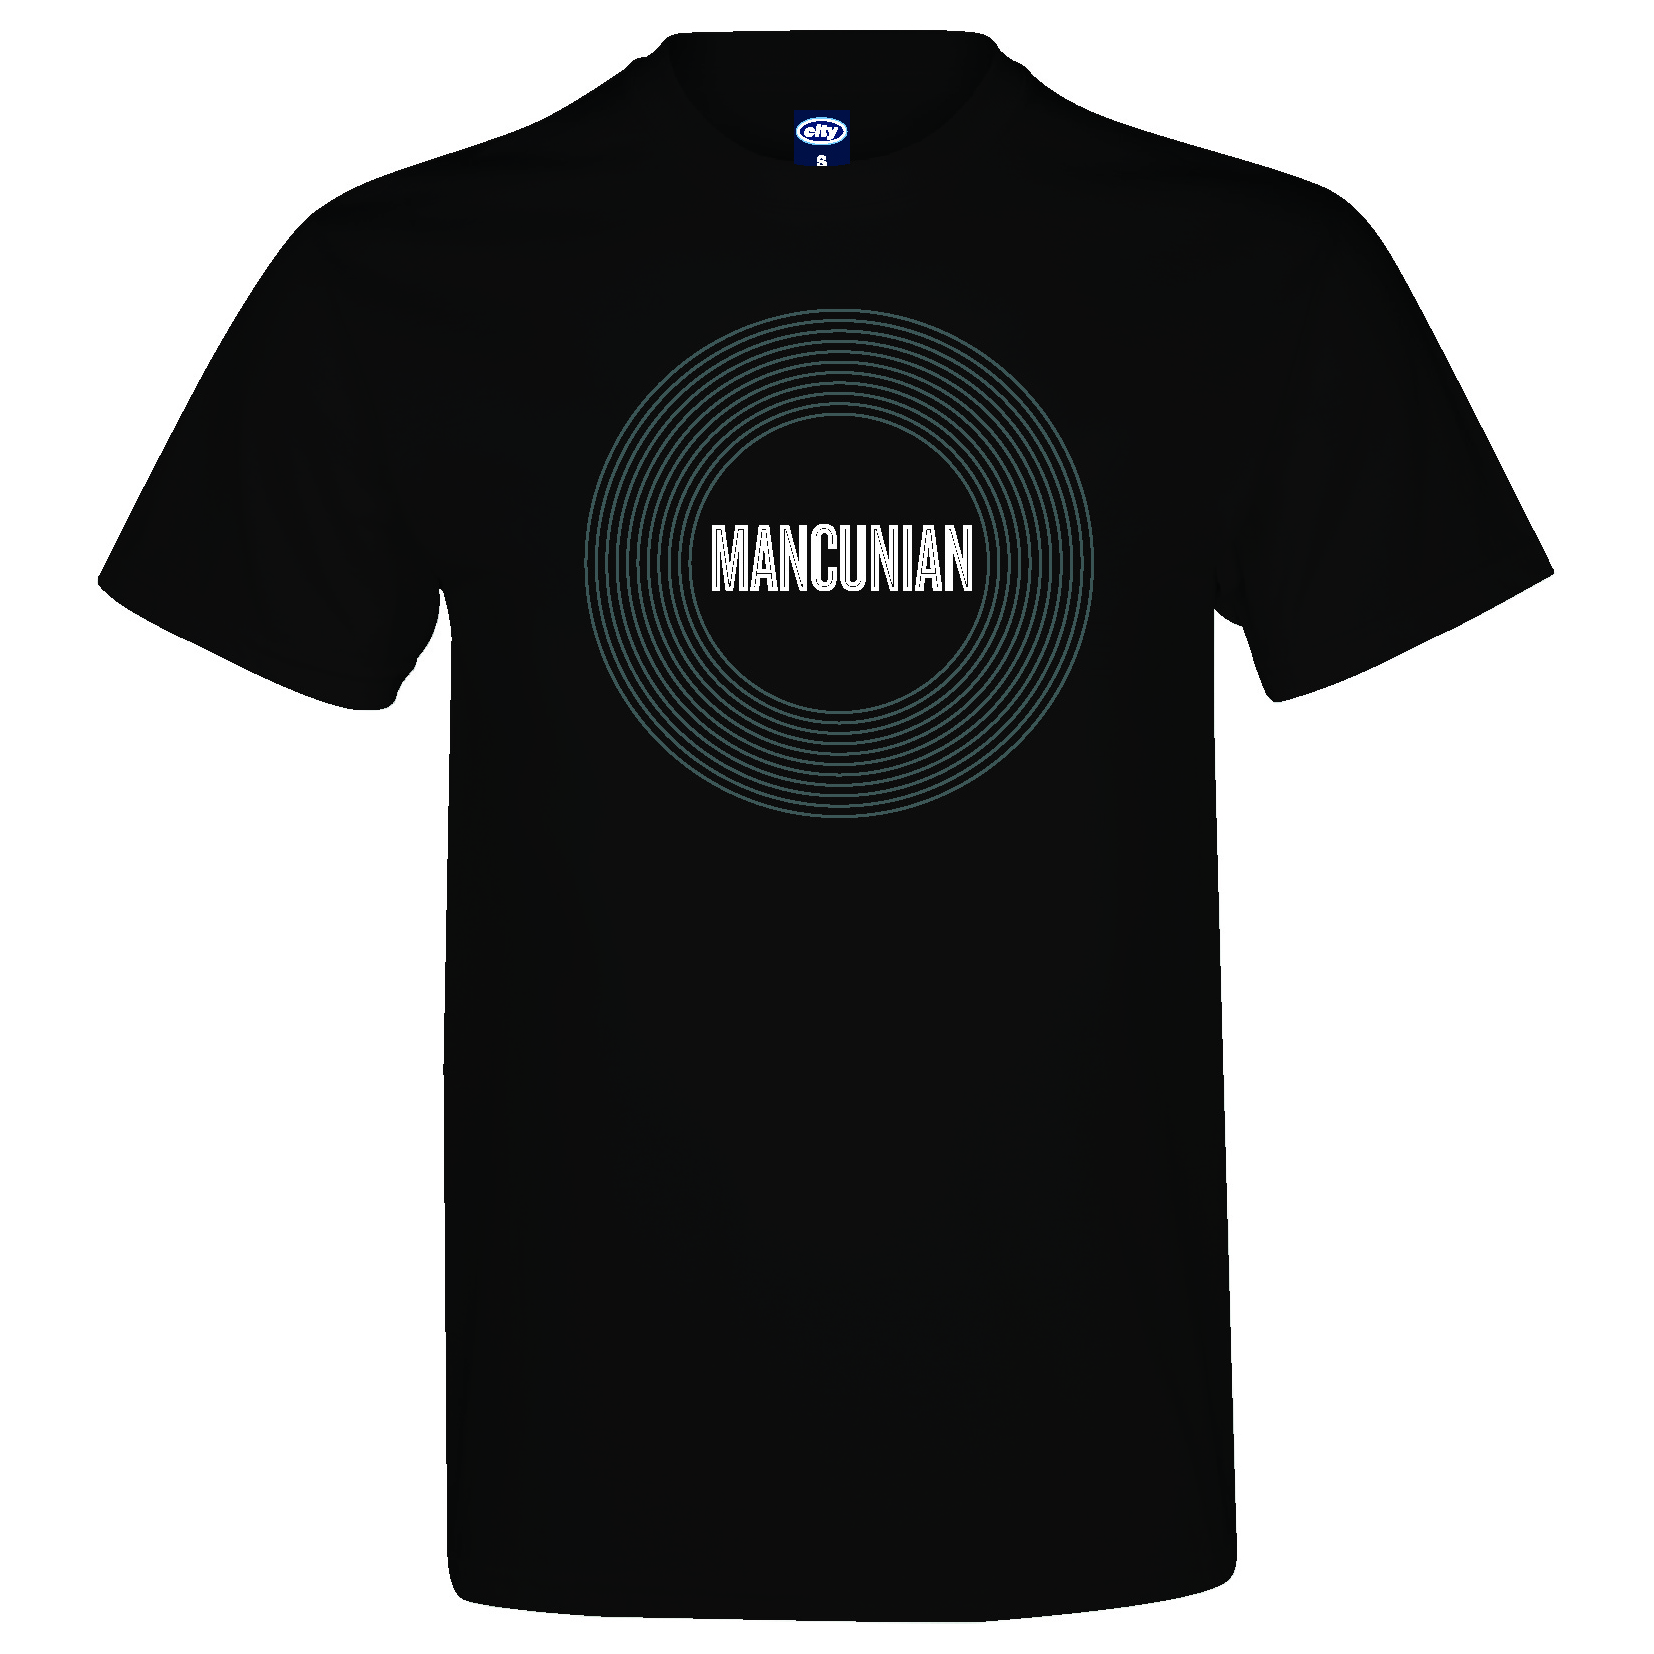 Manchester City 2for20 Mancunian T-Shirt - Mens - Black